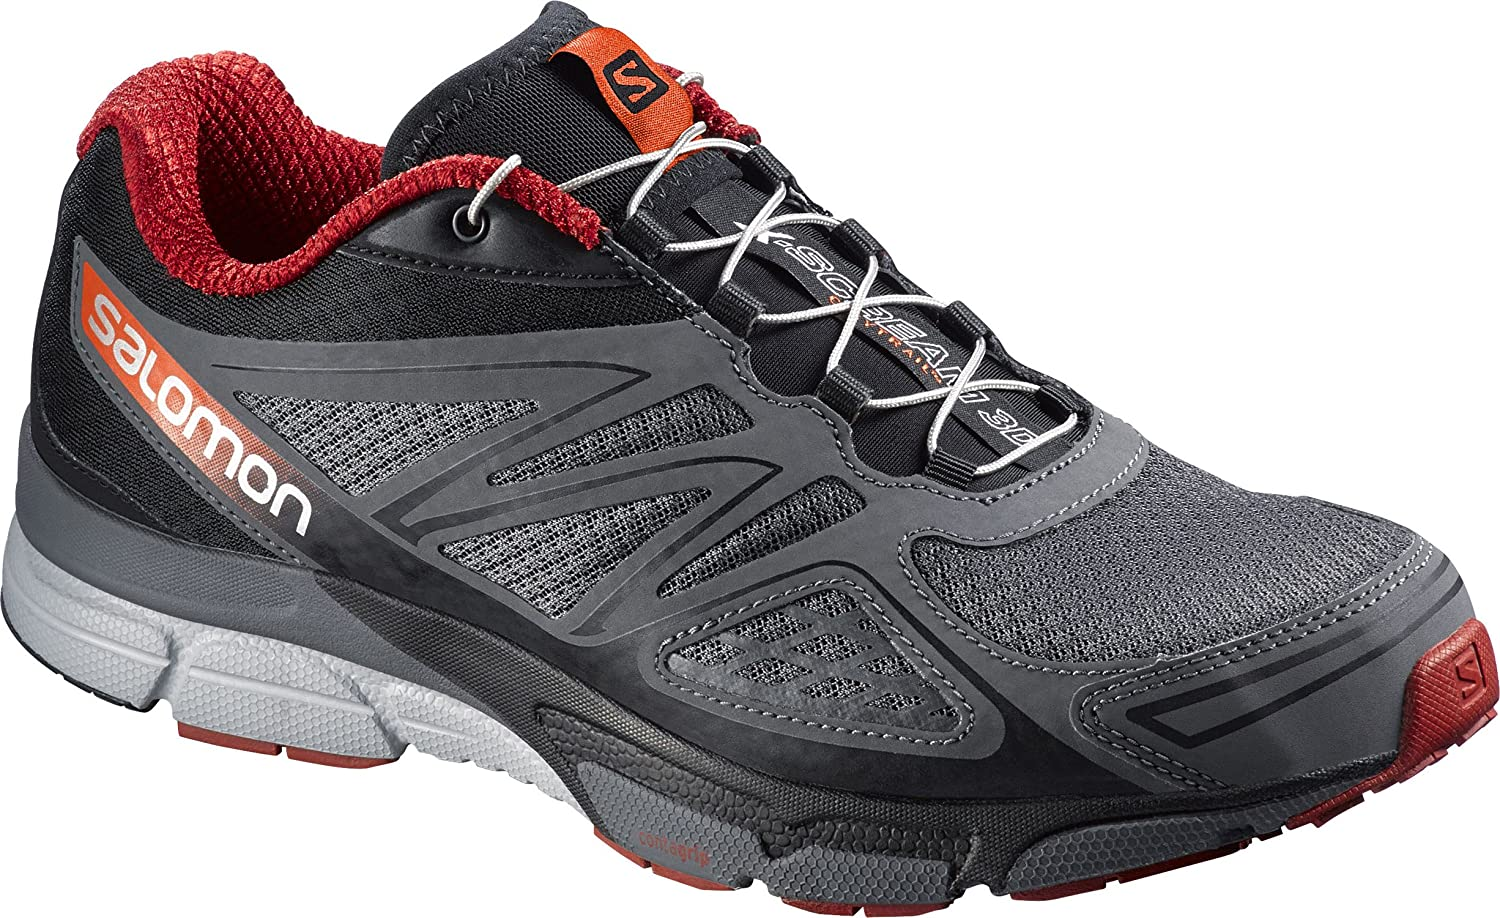 SALOMON X Tour 2 Chaussure De Course à Pied 49.3: Amazon